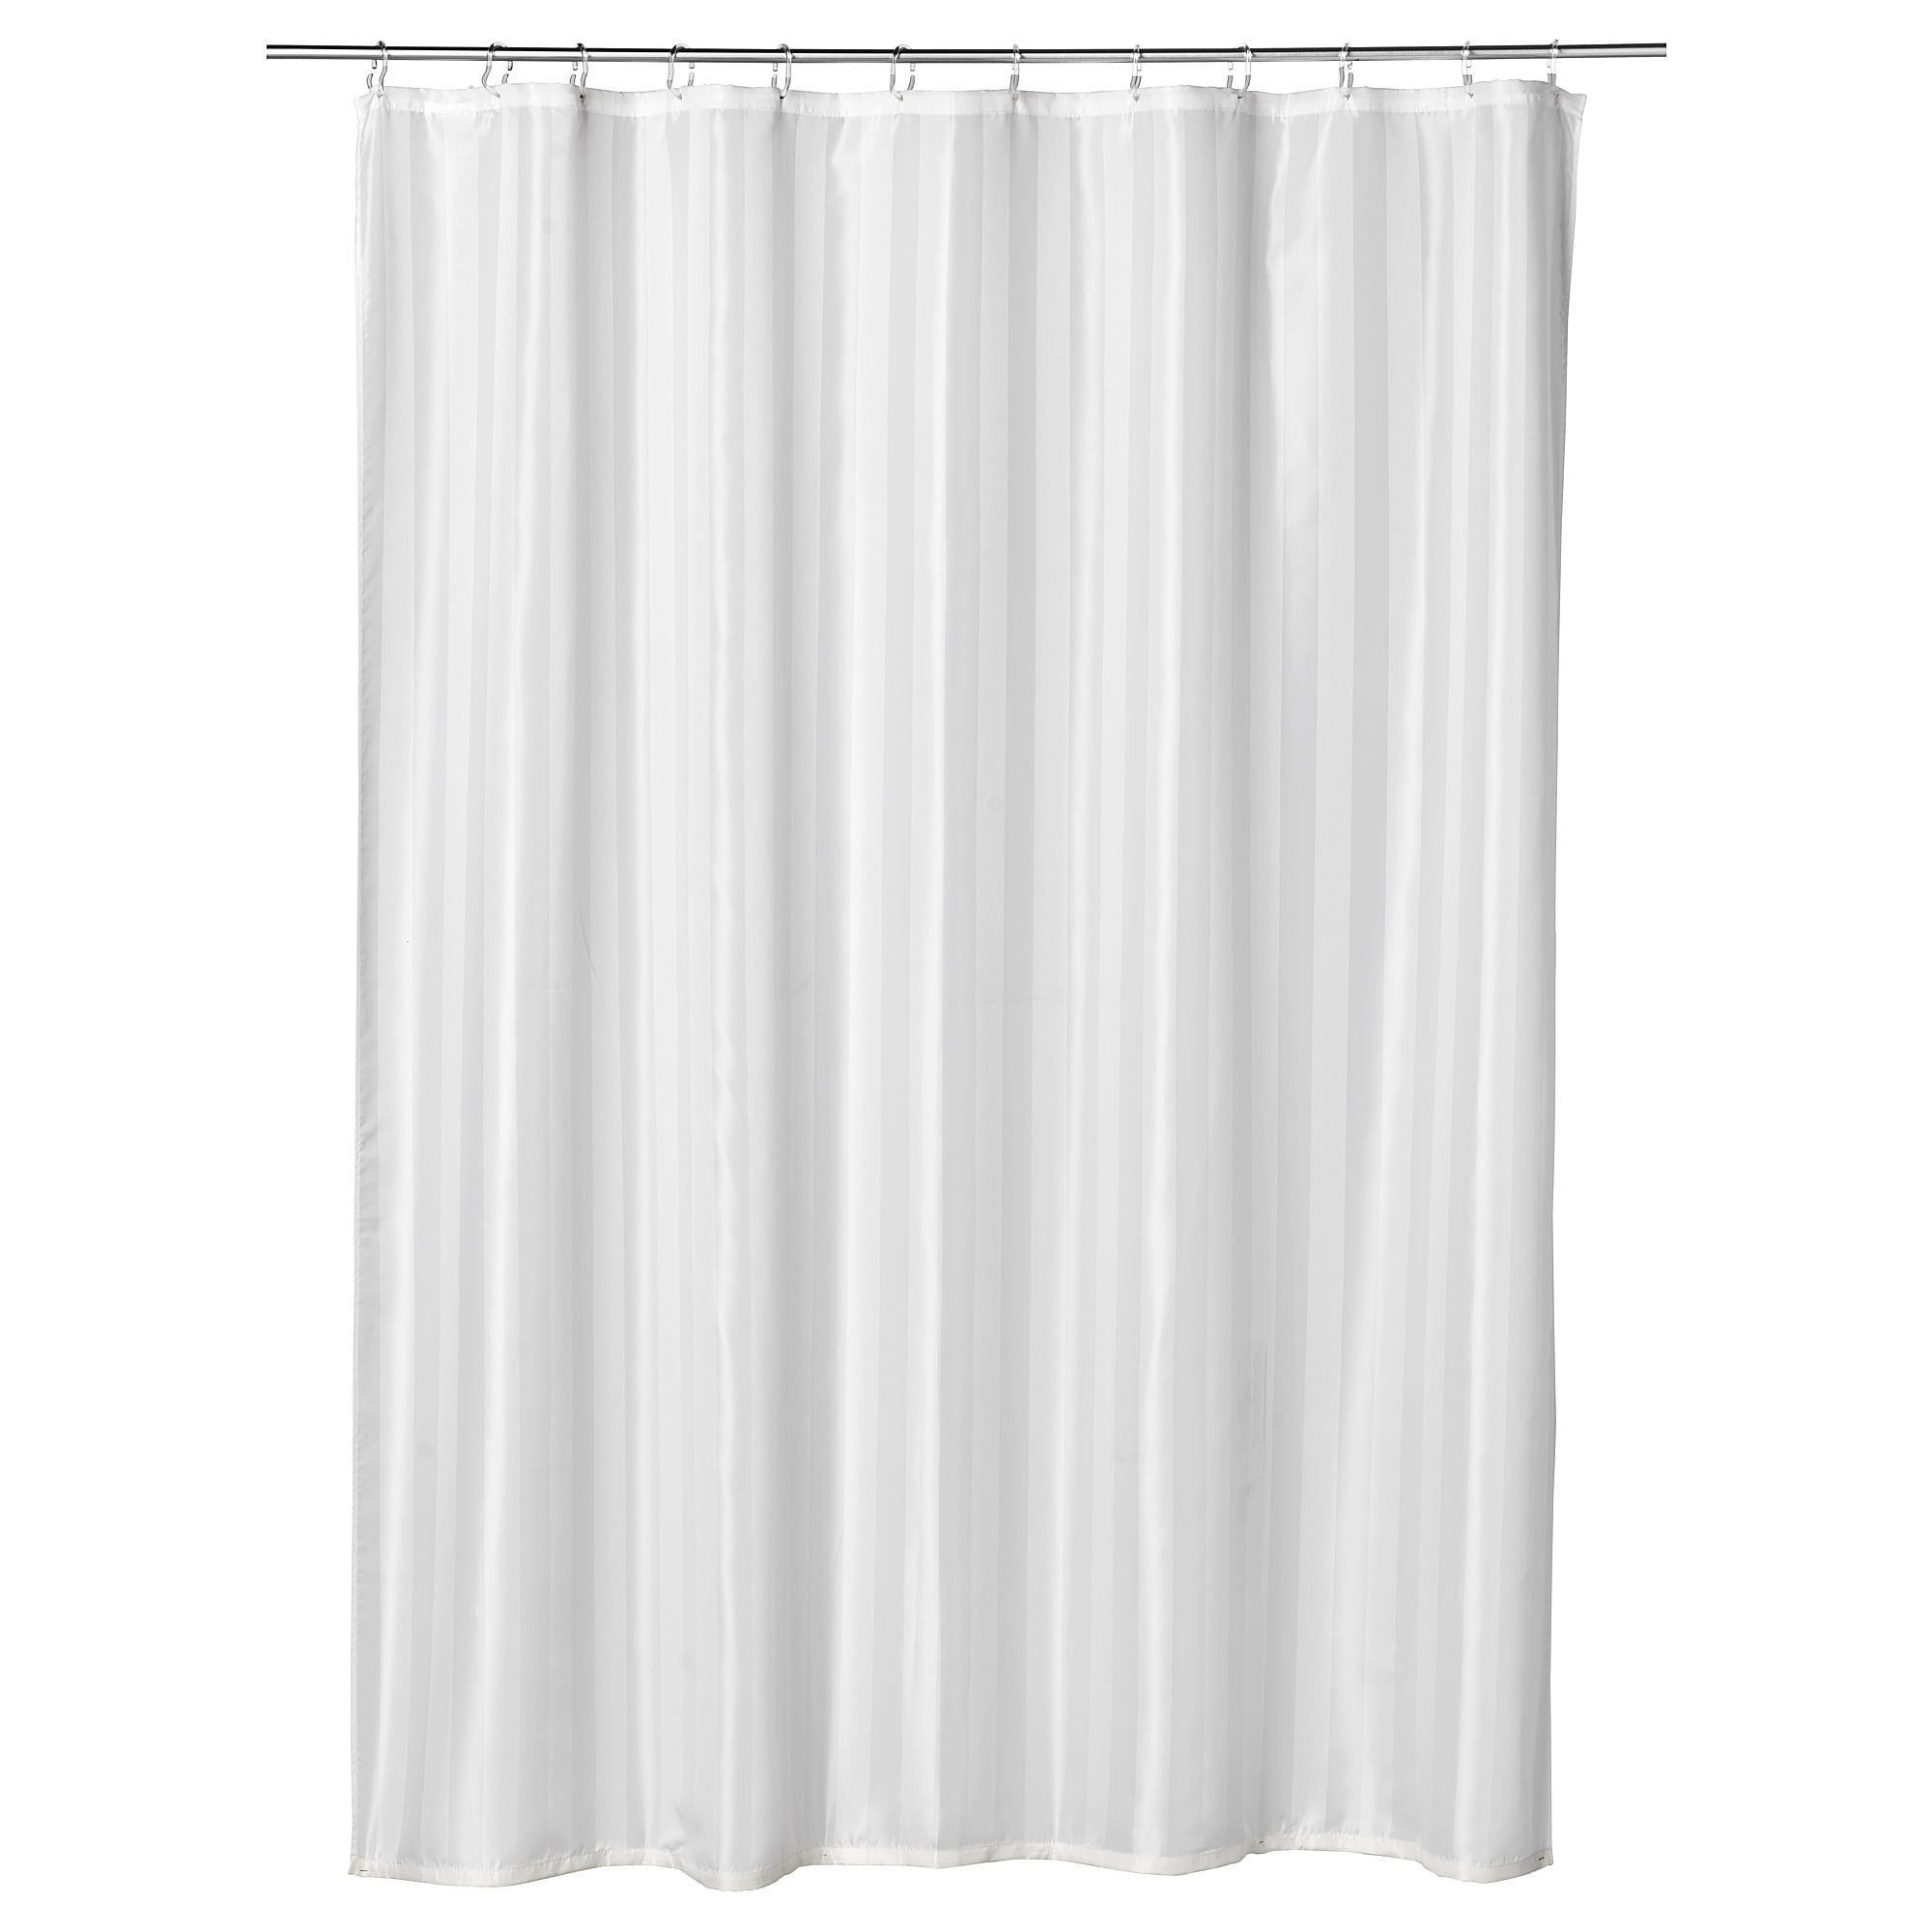 world shower product curtain waffle do weave market white xxx curtains